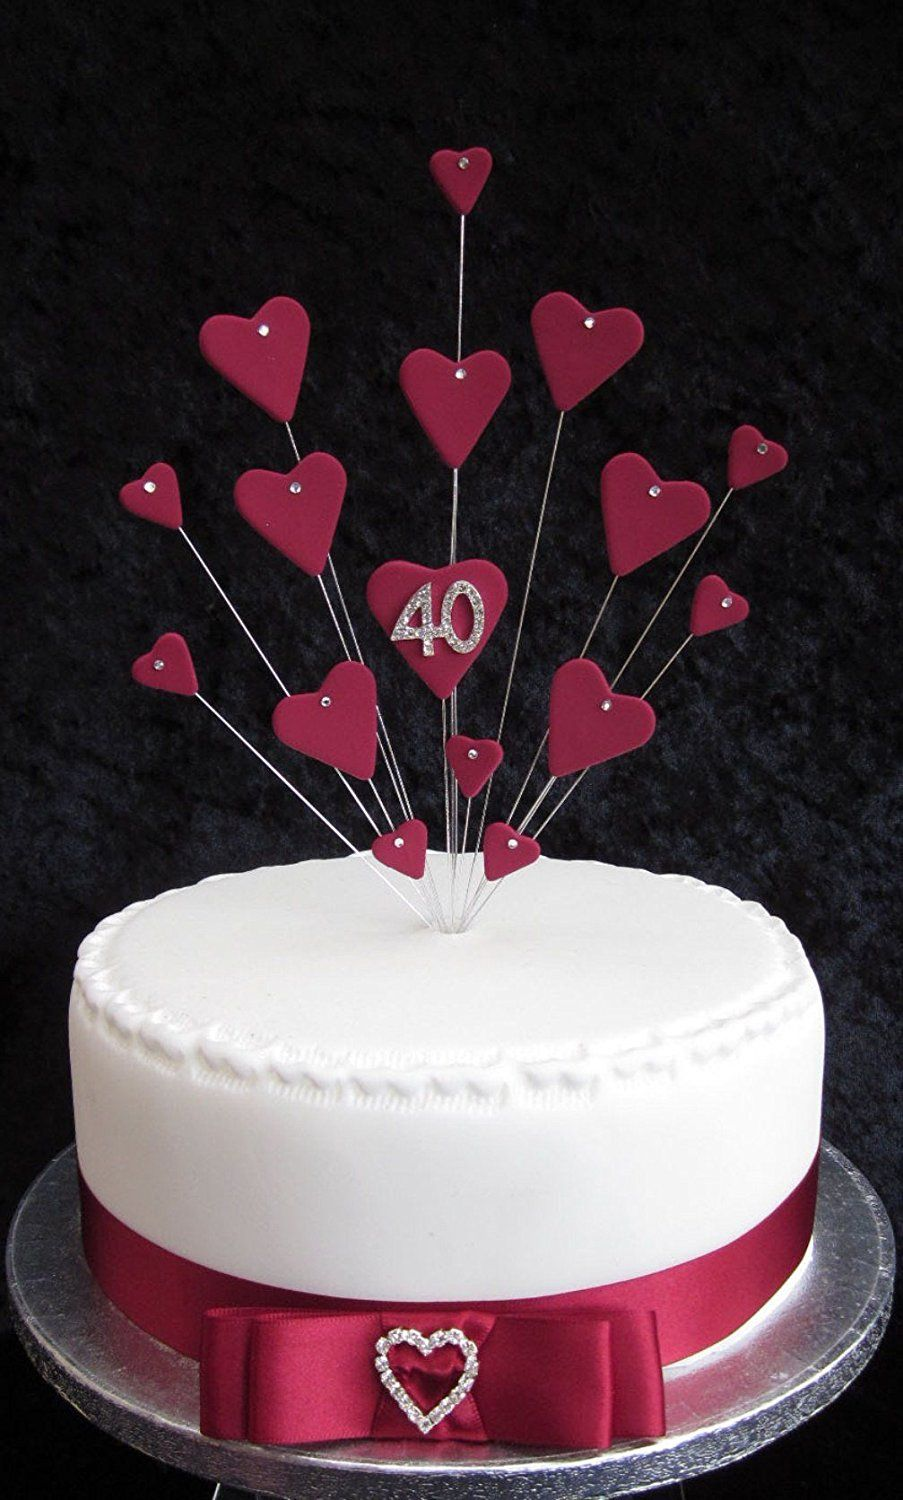 40th Ruby Wedding Anniversary Birthday Cake Topper Suitable For A 20cm